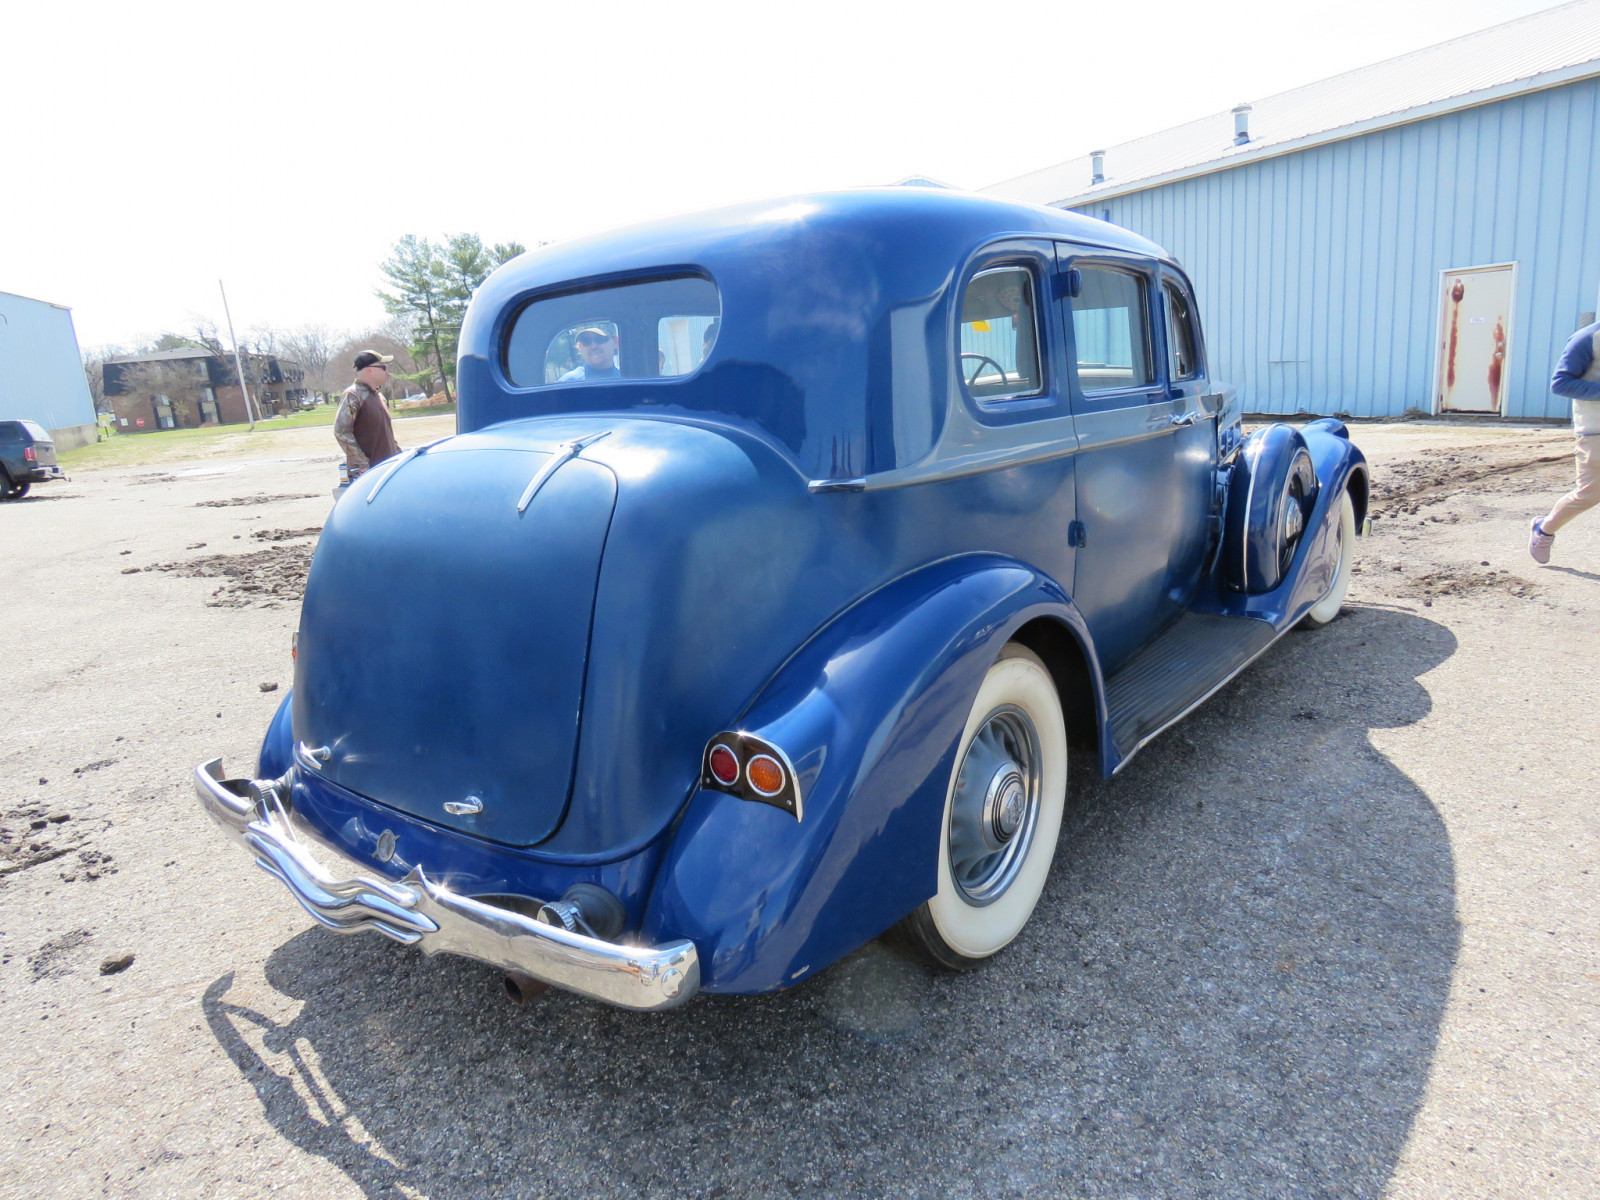 1936 Pierce Arrow V12  Series 1602 5 Passenger Sedan - Image 6